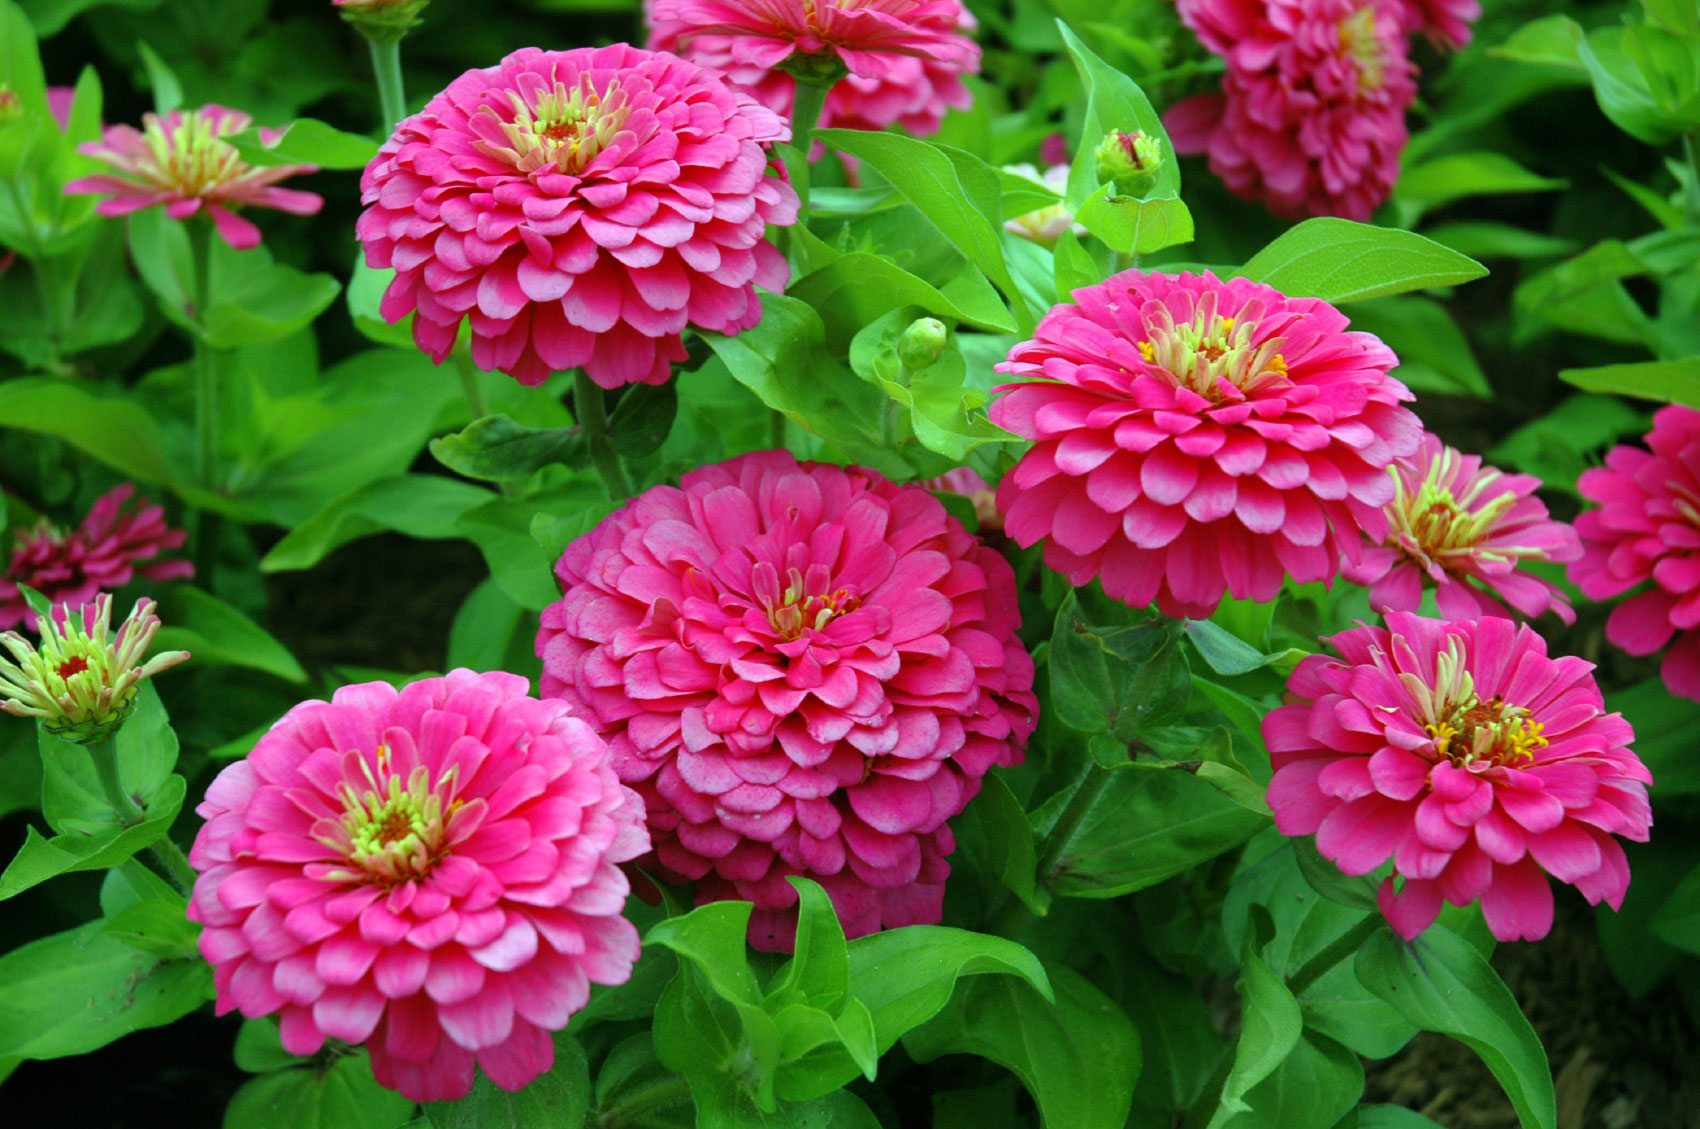 Growing Zinnia Plants Tips How To Plant Zinnias